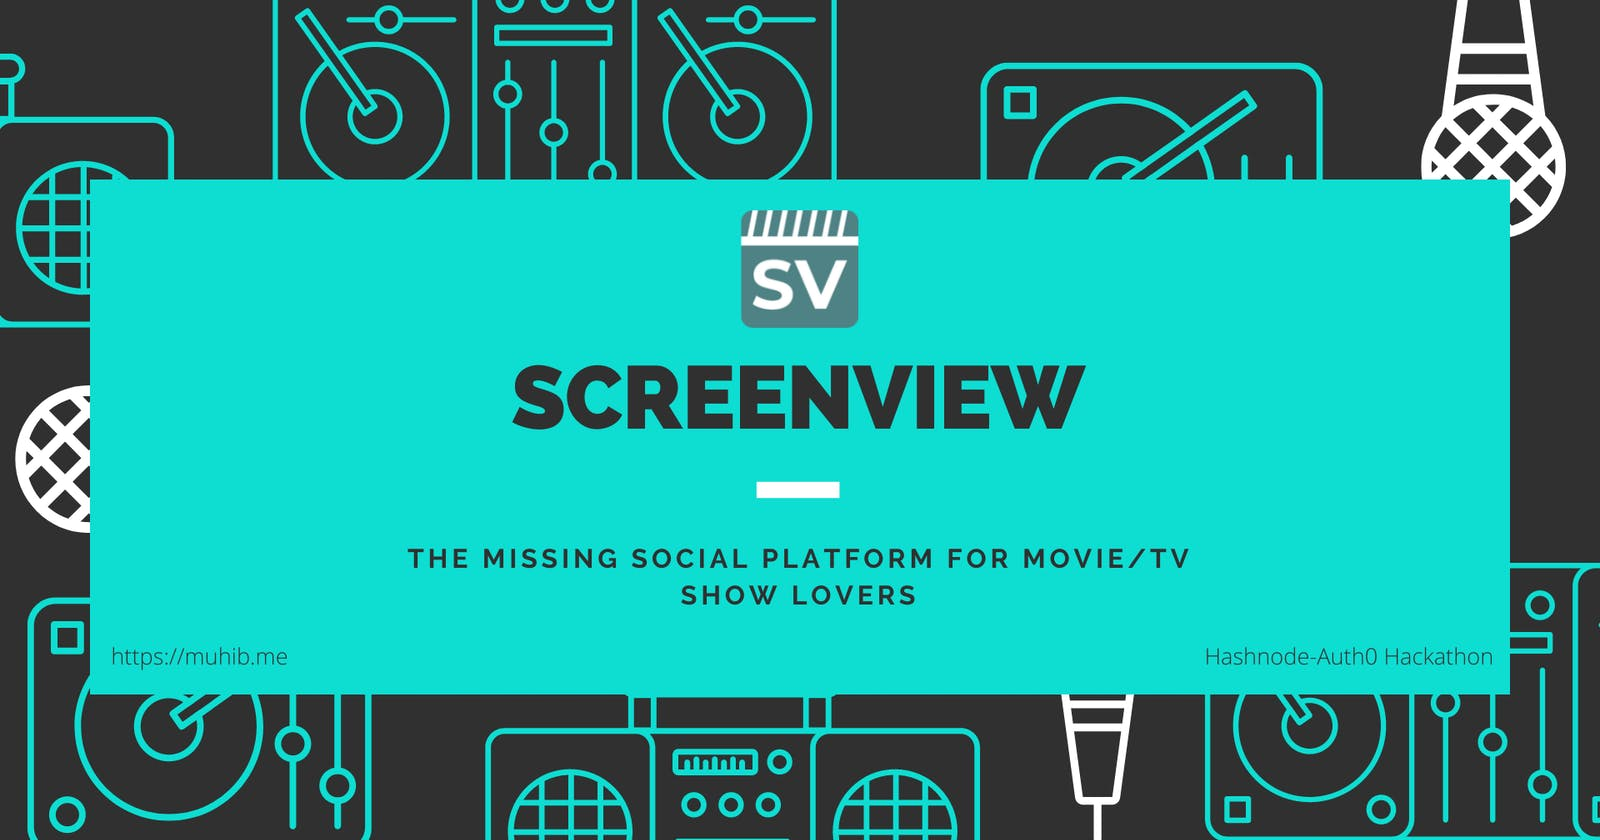 Introducing ScreenView: The missing social platform for movie/tv show lovers